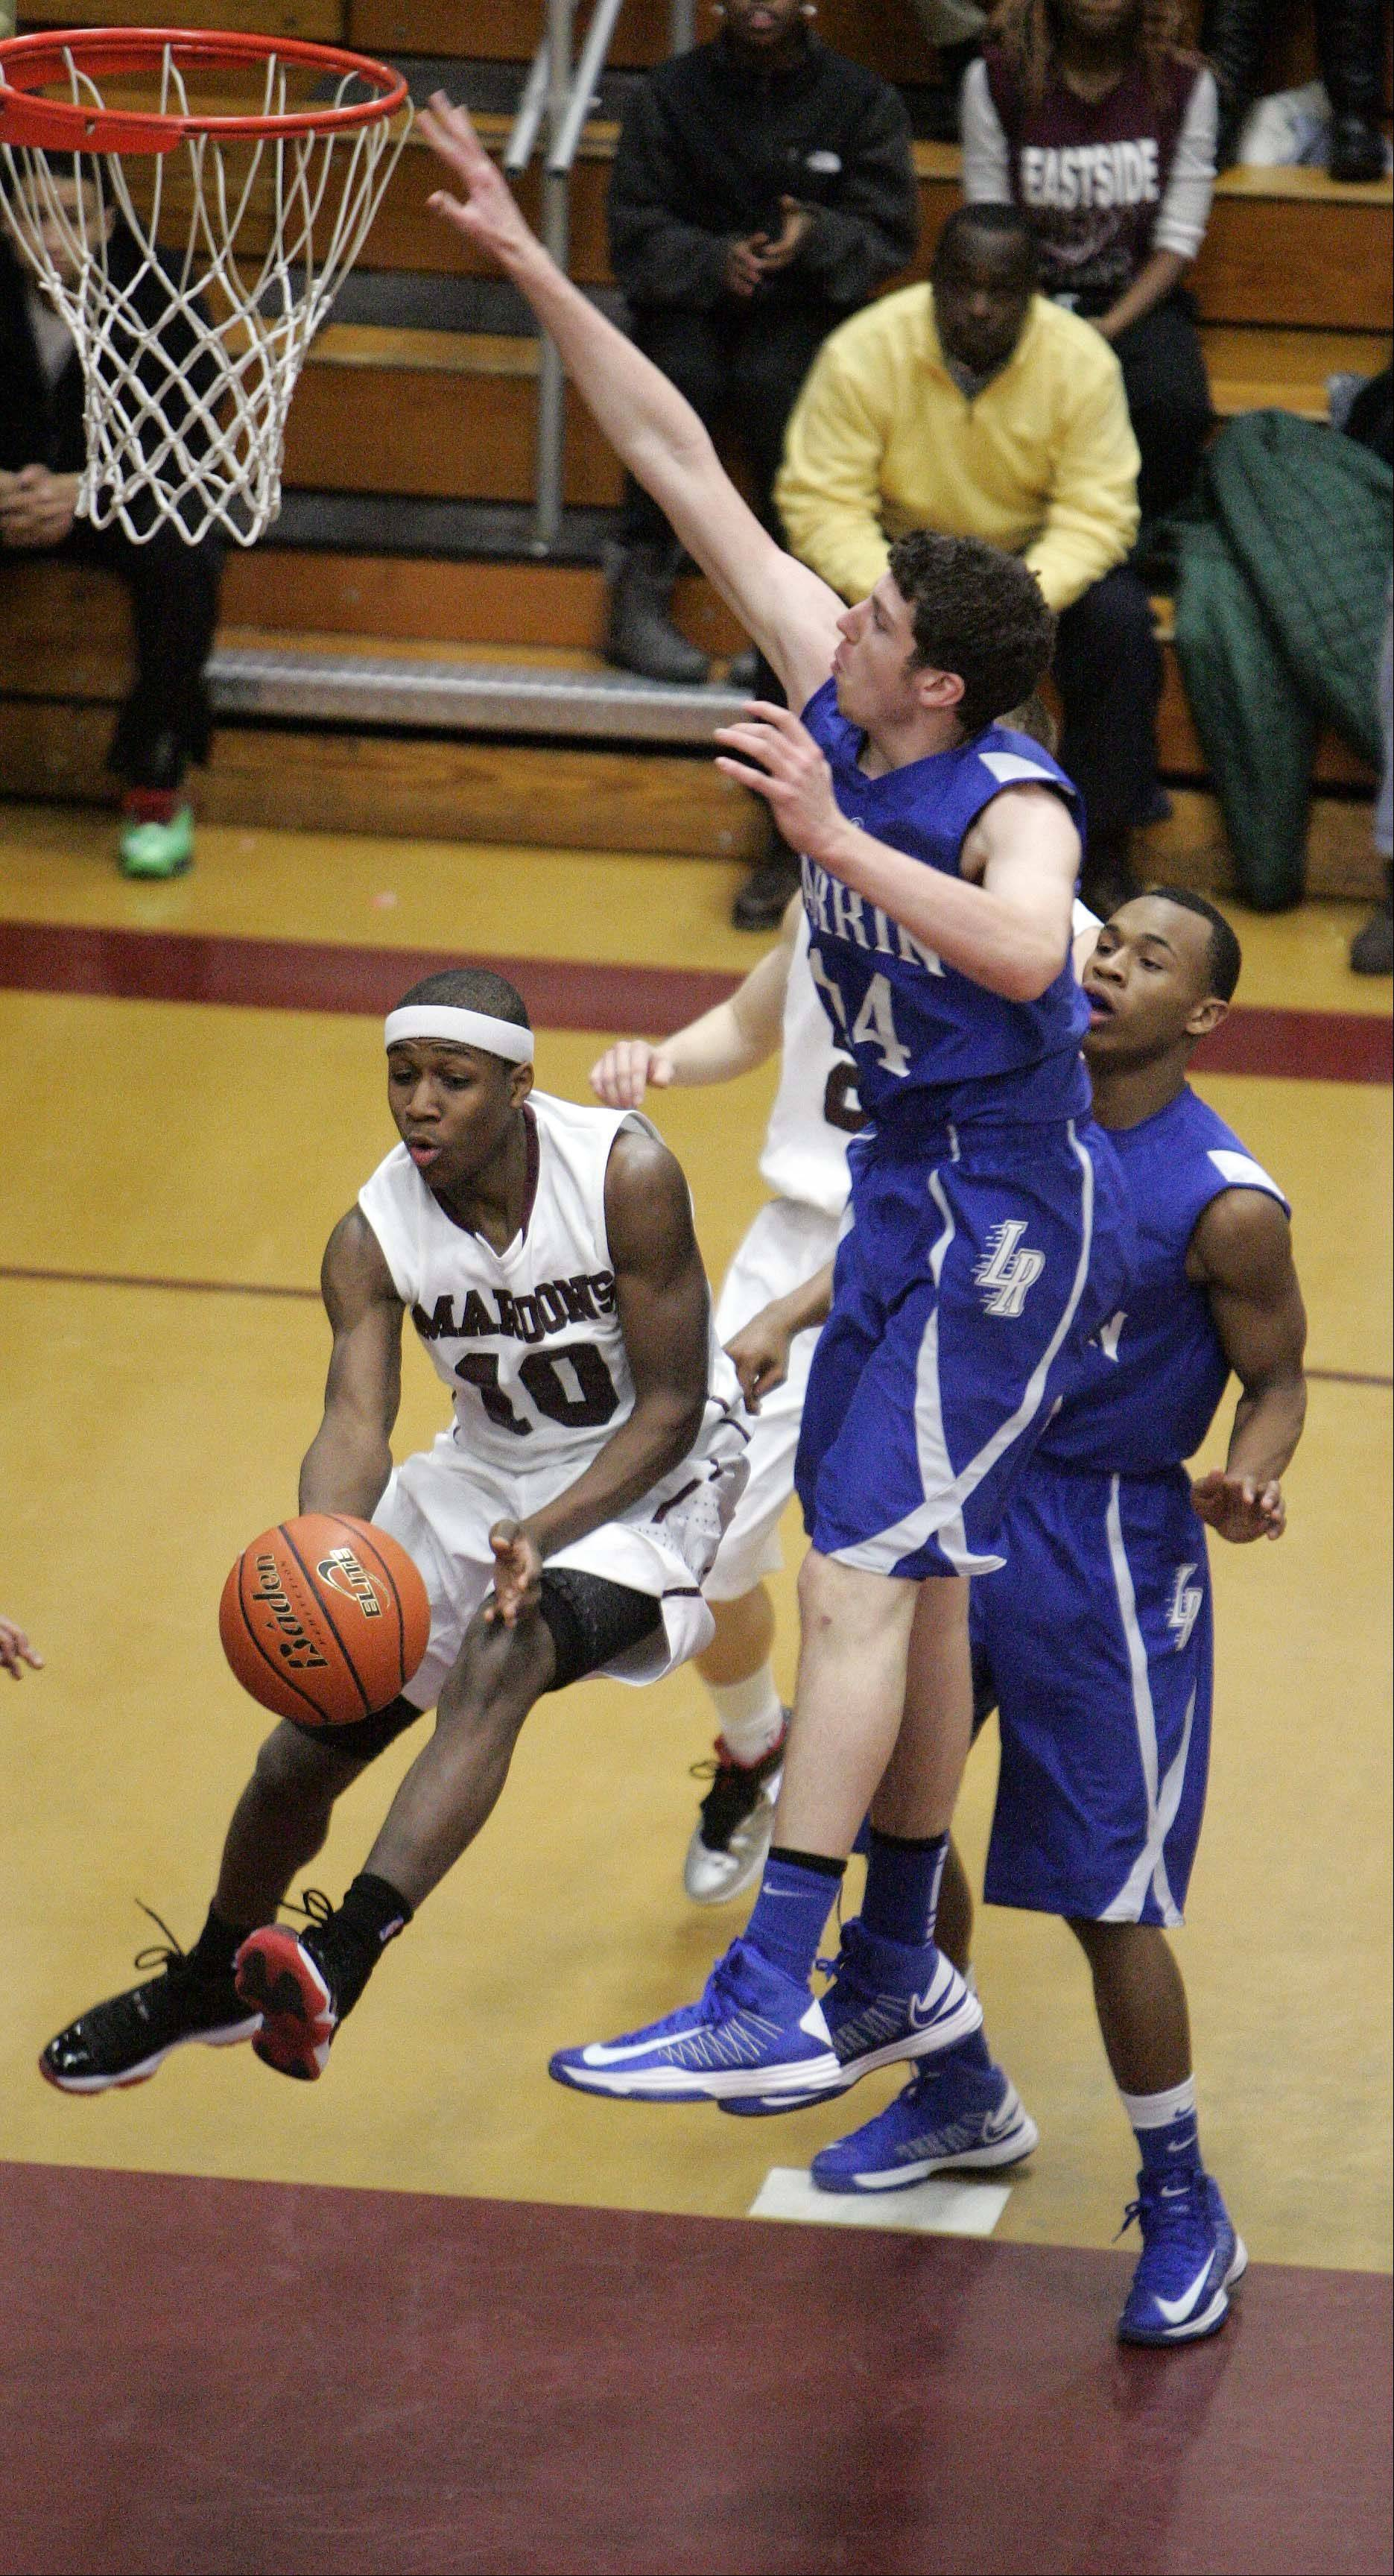 Elgin wing Arie Williams (10) looks for an opening after going to the hoop Friday night at Chesbrough Field House. Larkin's Drew Jones defends.